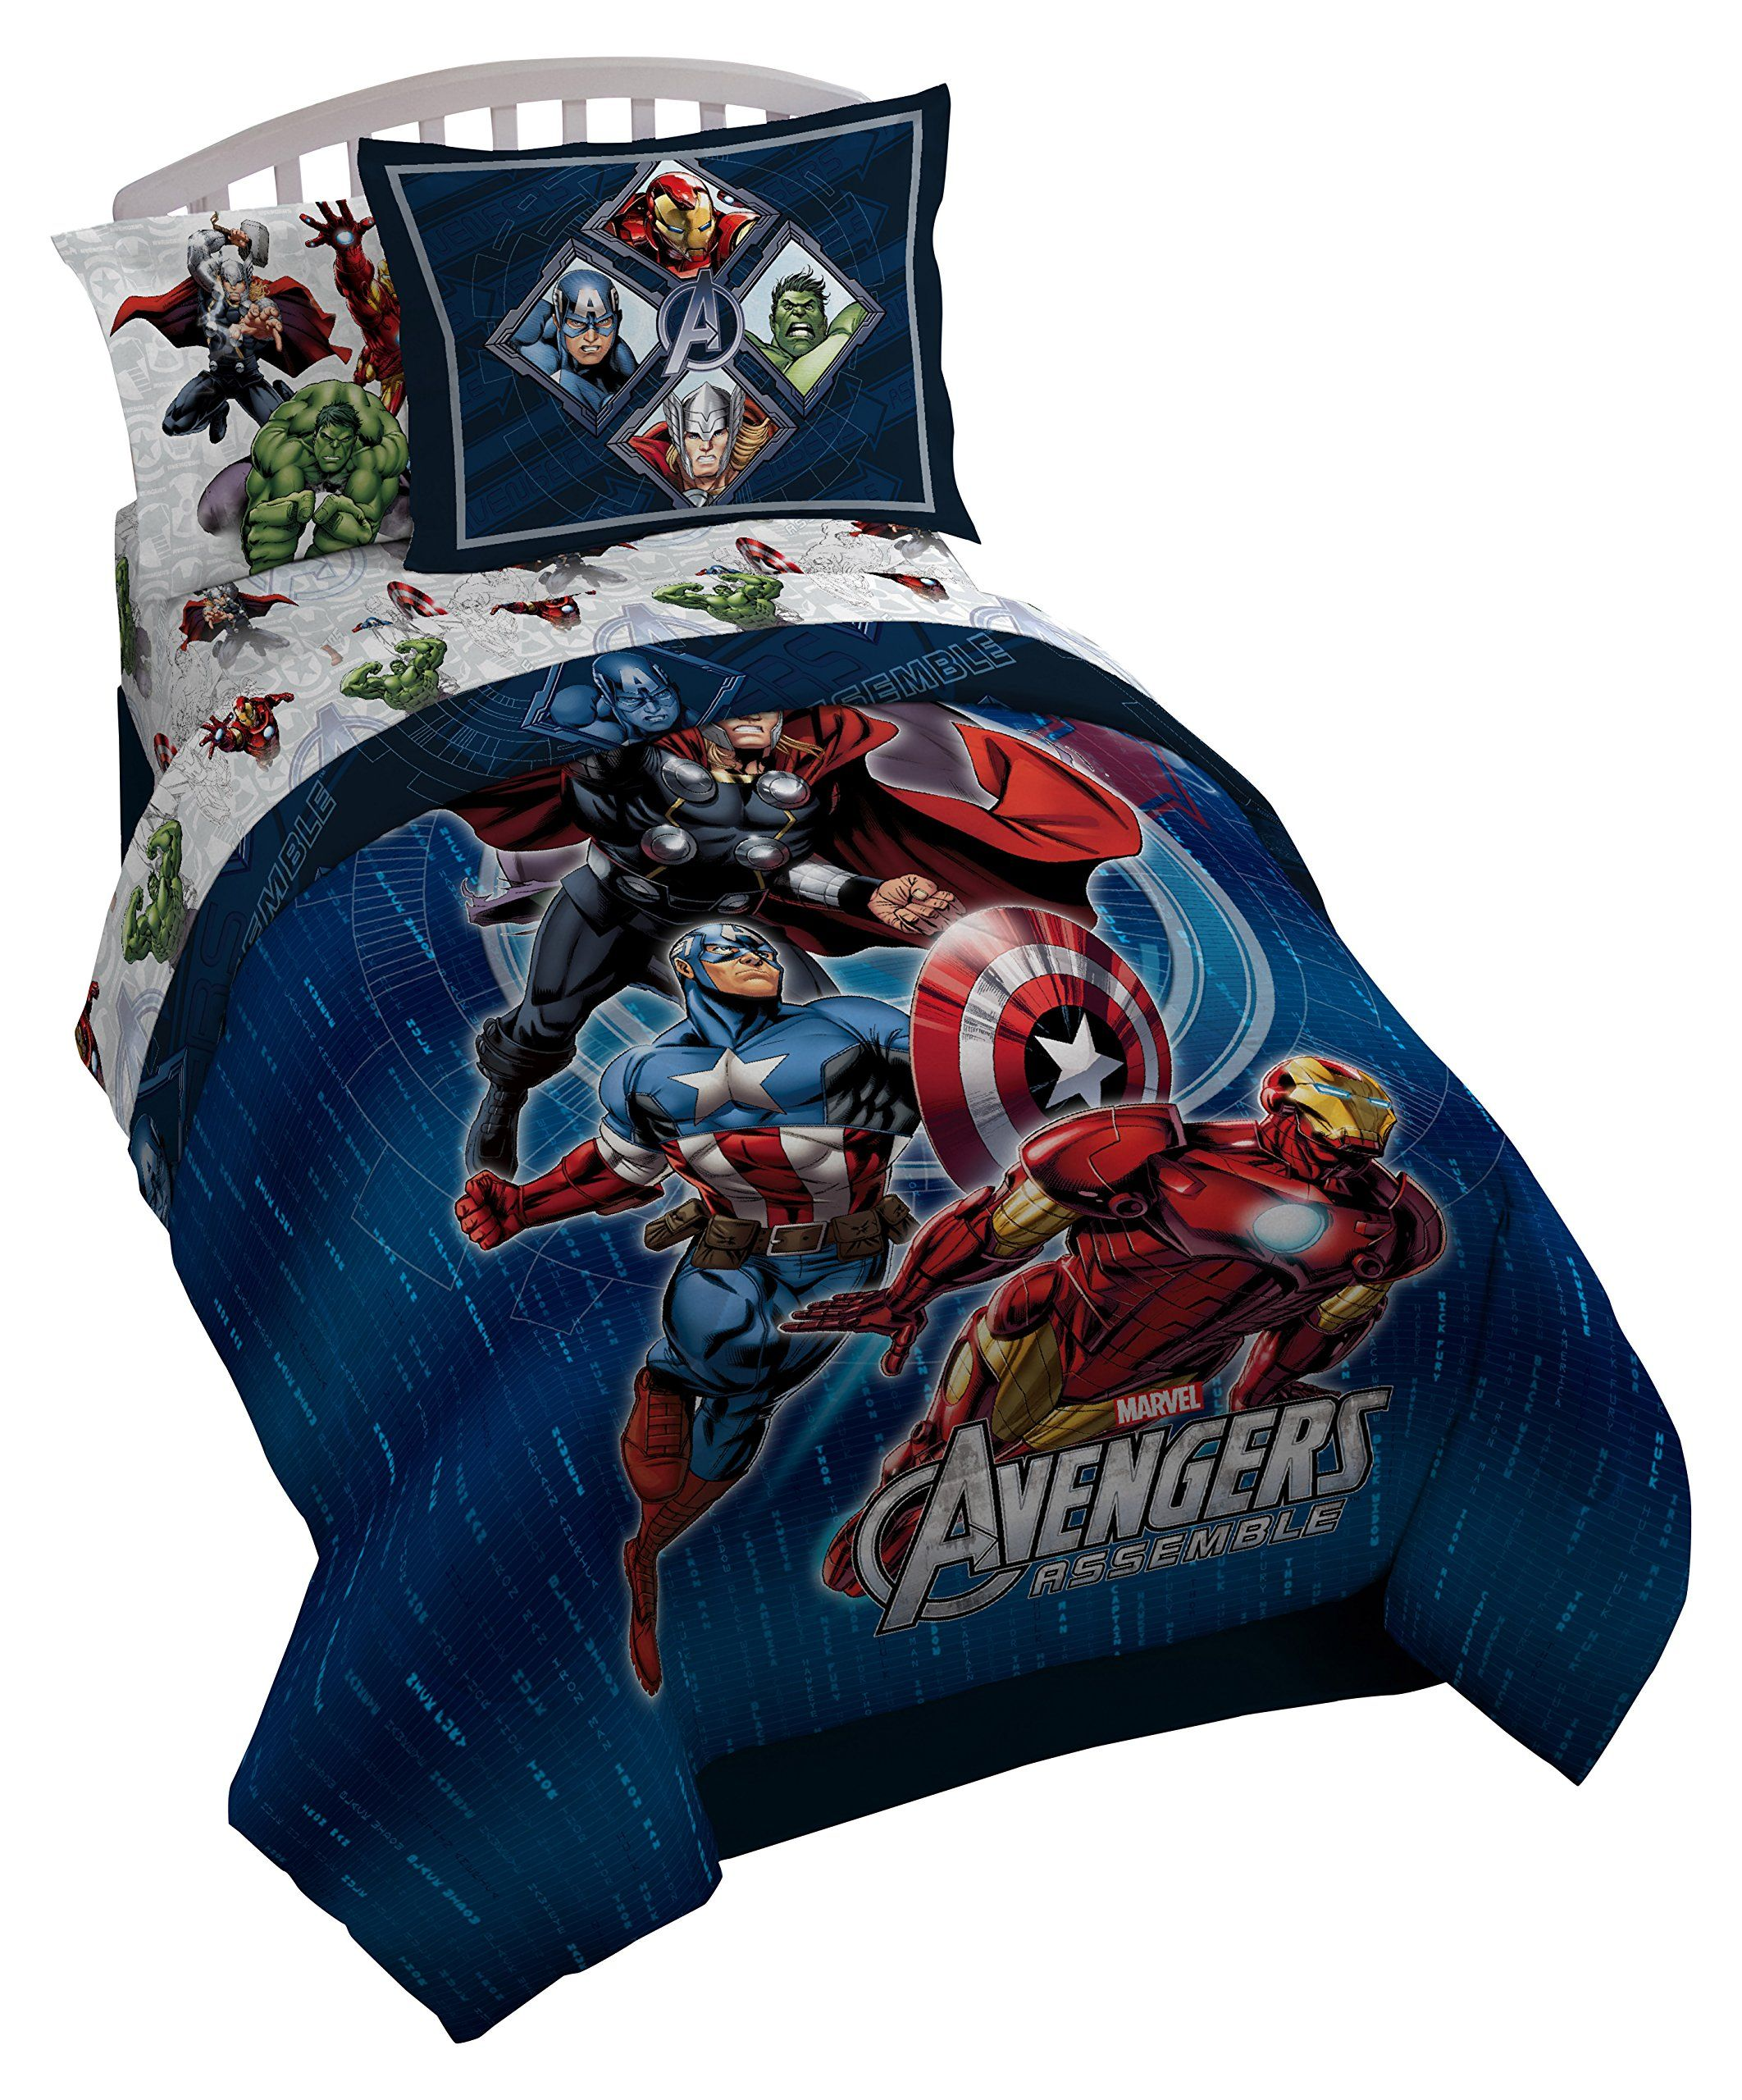 navy large marvel of sets kawaii assemble marvelous beach bedroom size detail pink avengers bedding buy anchor collection comforter seashell fitted sheet full themed